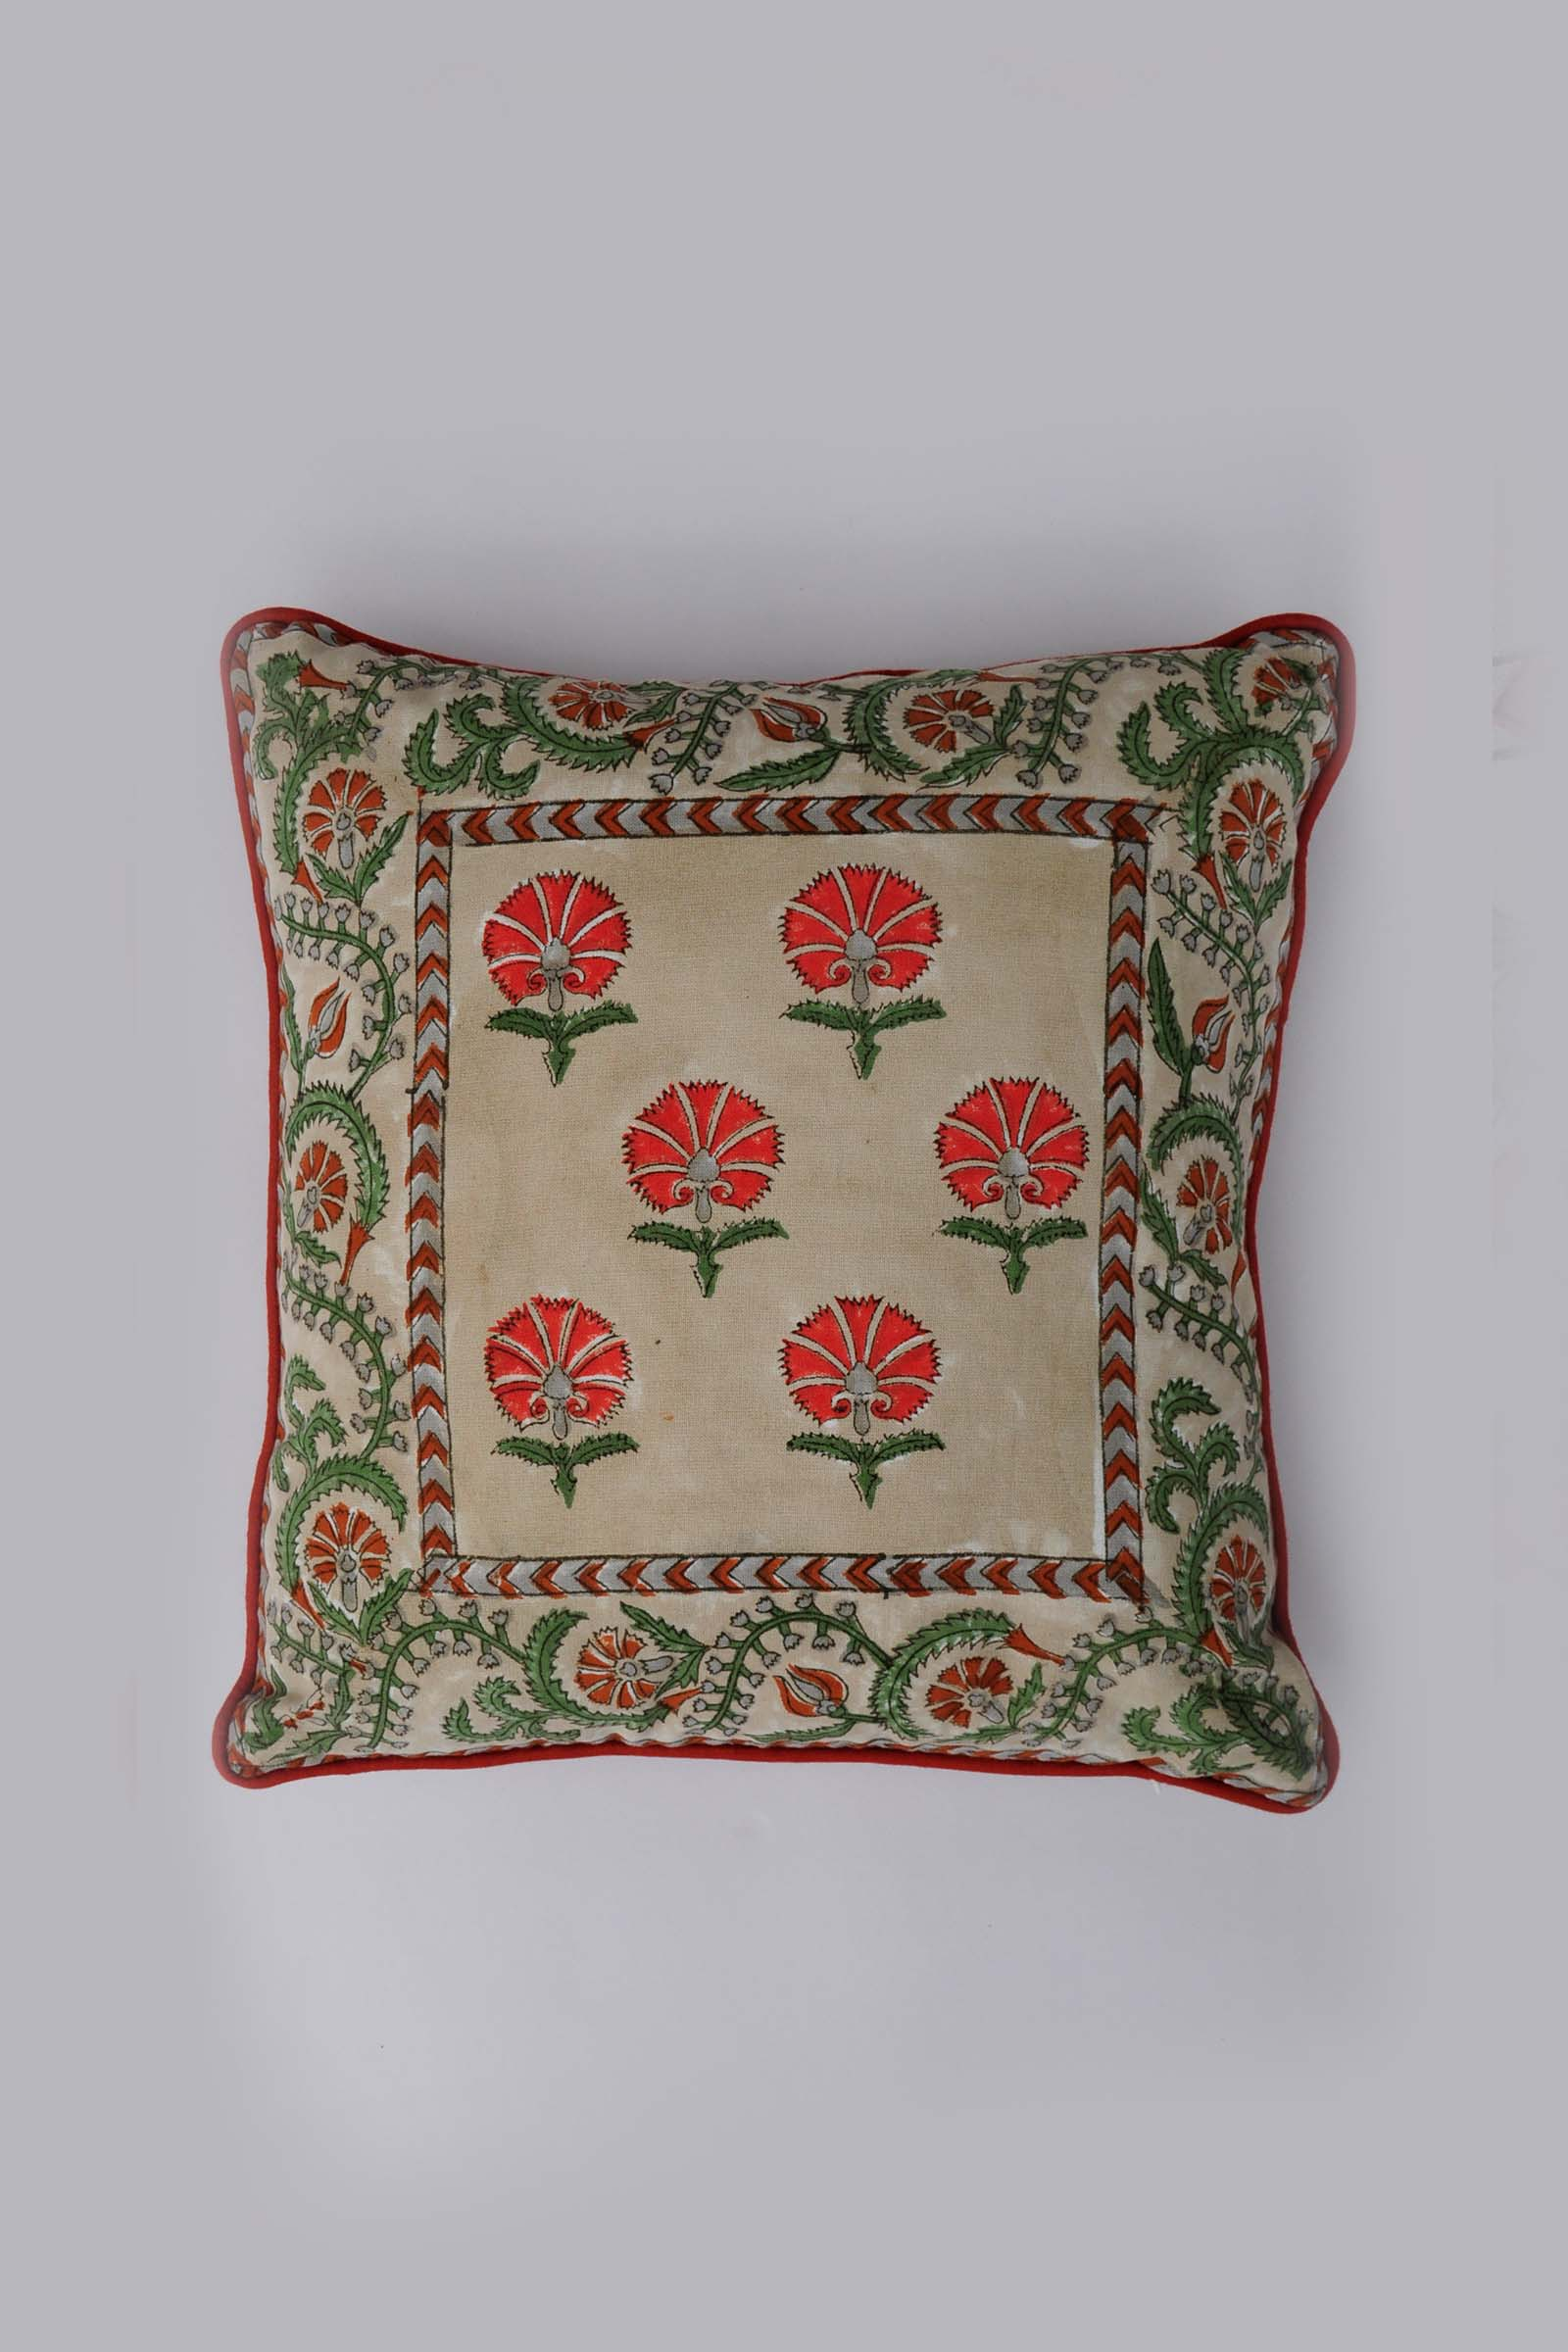 Suzani In Rust 12*12 Cushion Cover